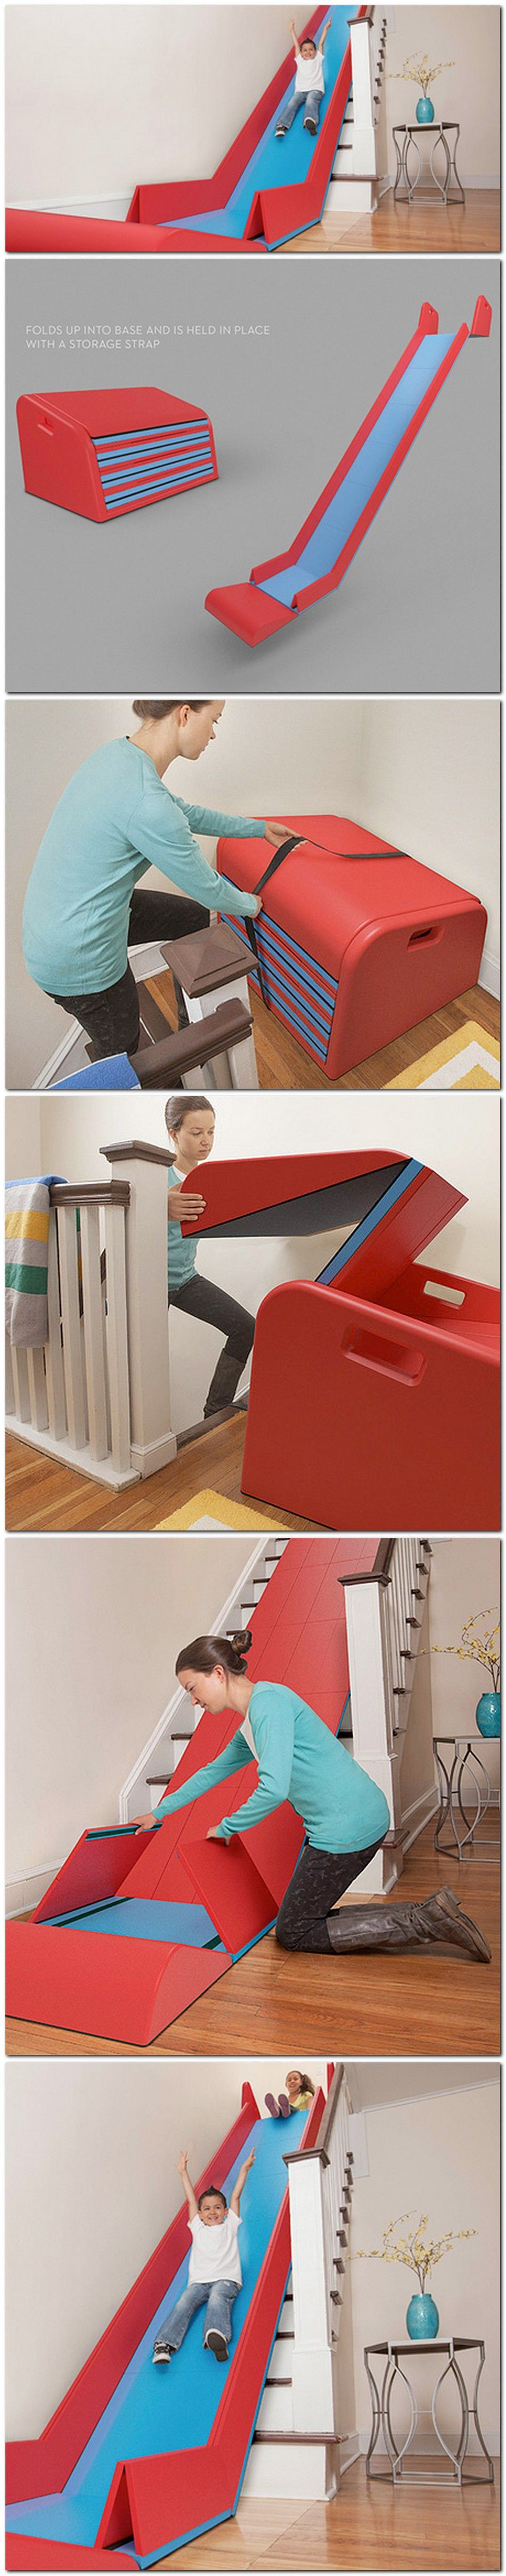 Genial SlideRider Turns Your Stairs Into A Slide :)